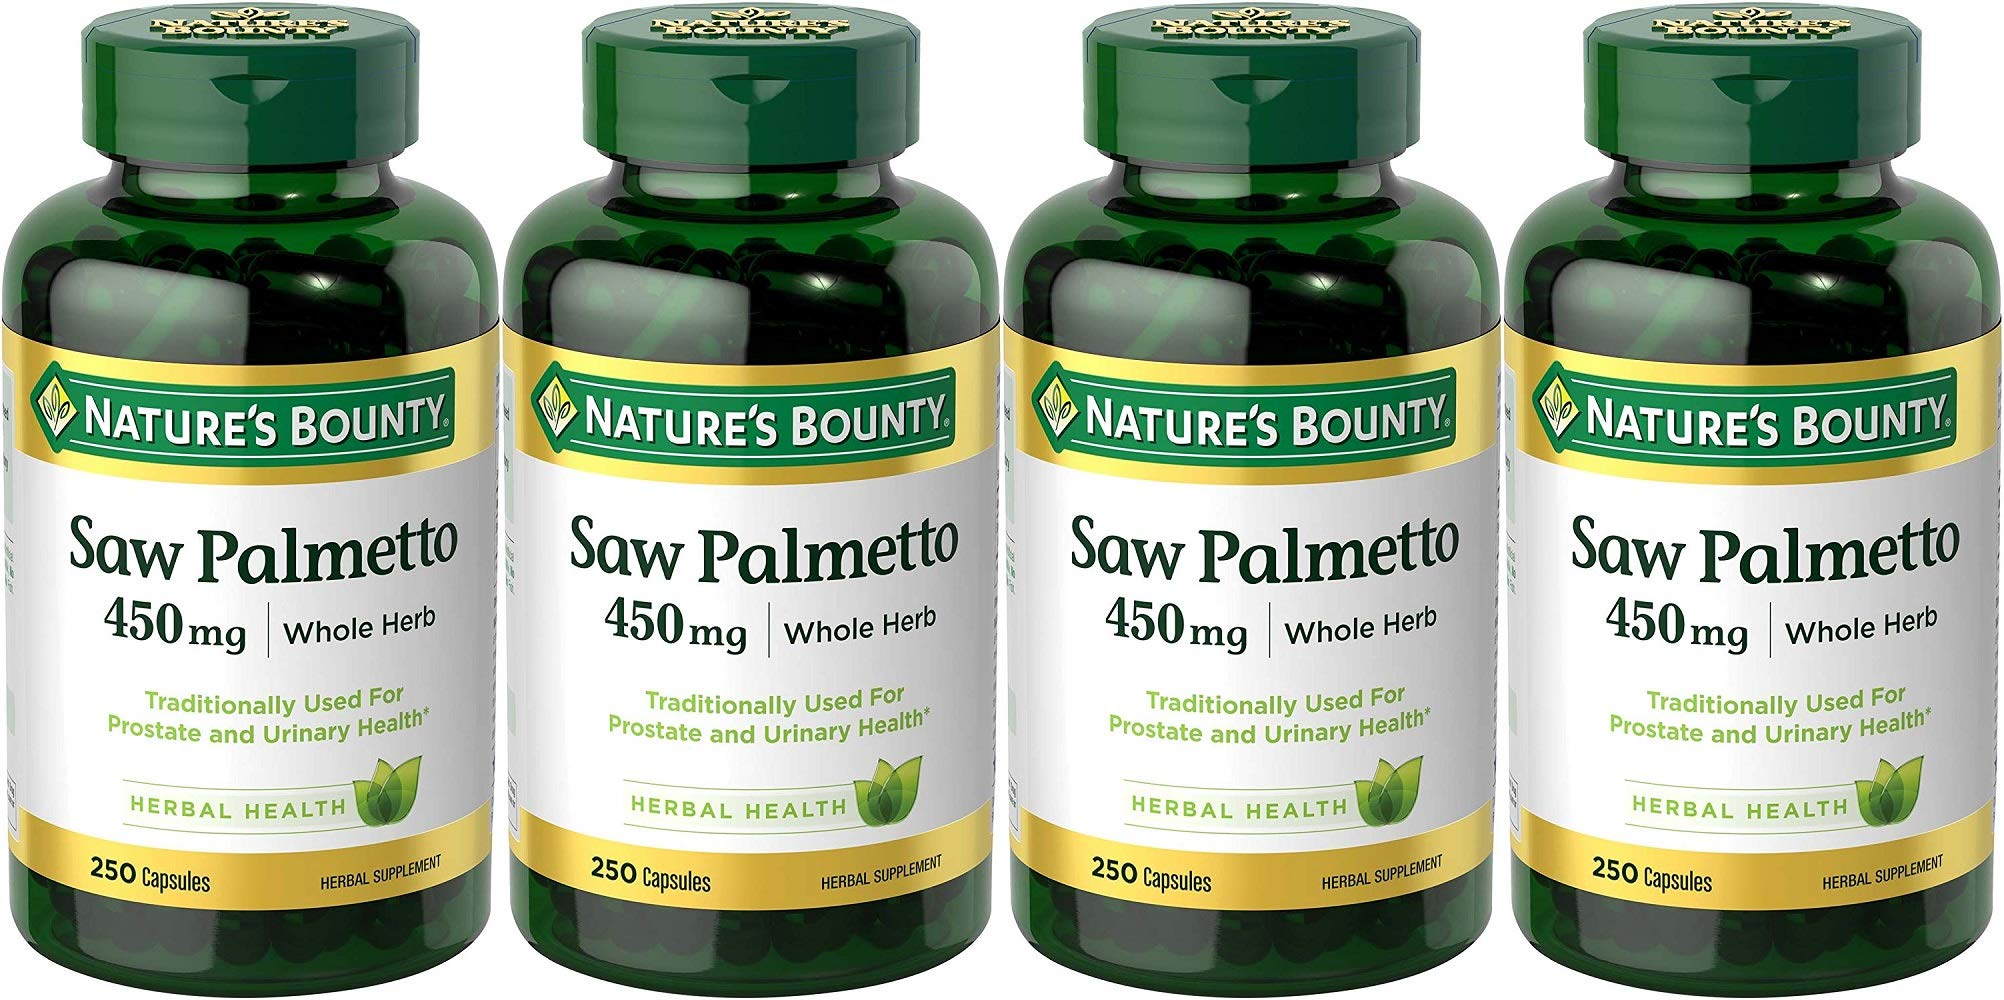 Nature's Bounty Saw Palmetto 450 mg Capsules 250 ea (Pack of 4)